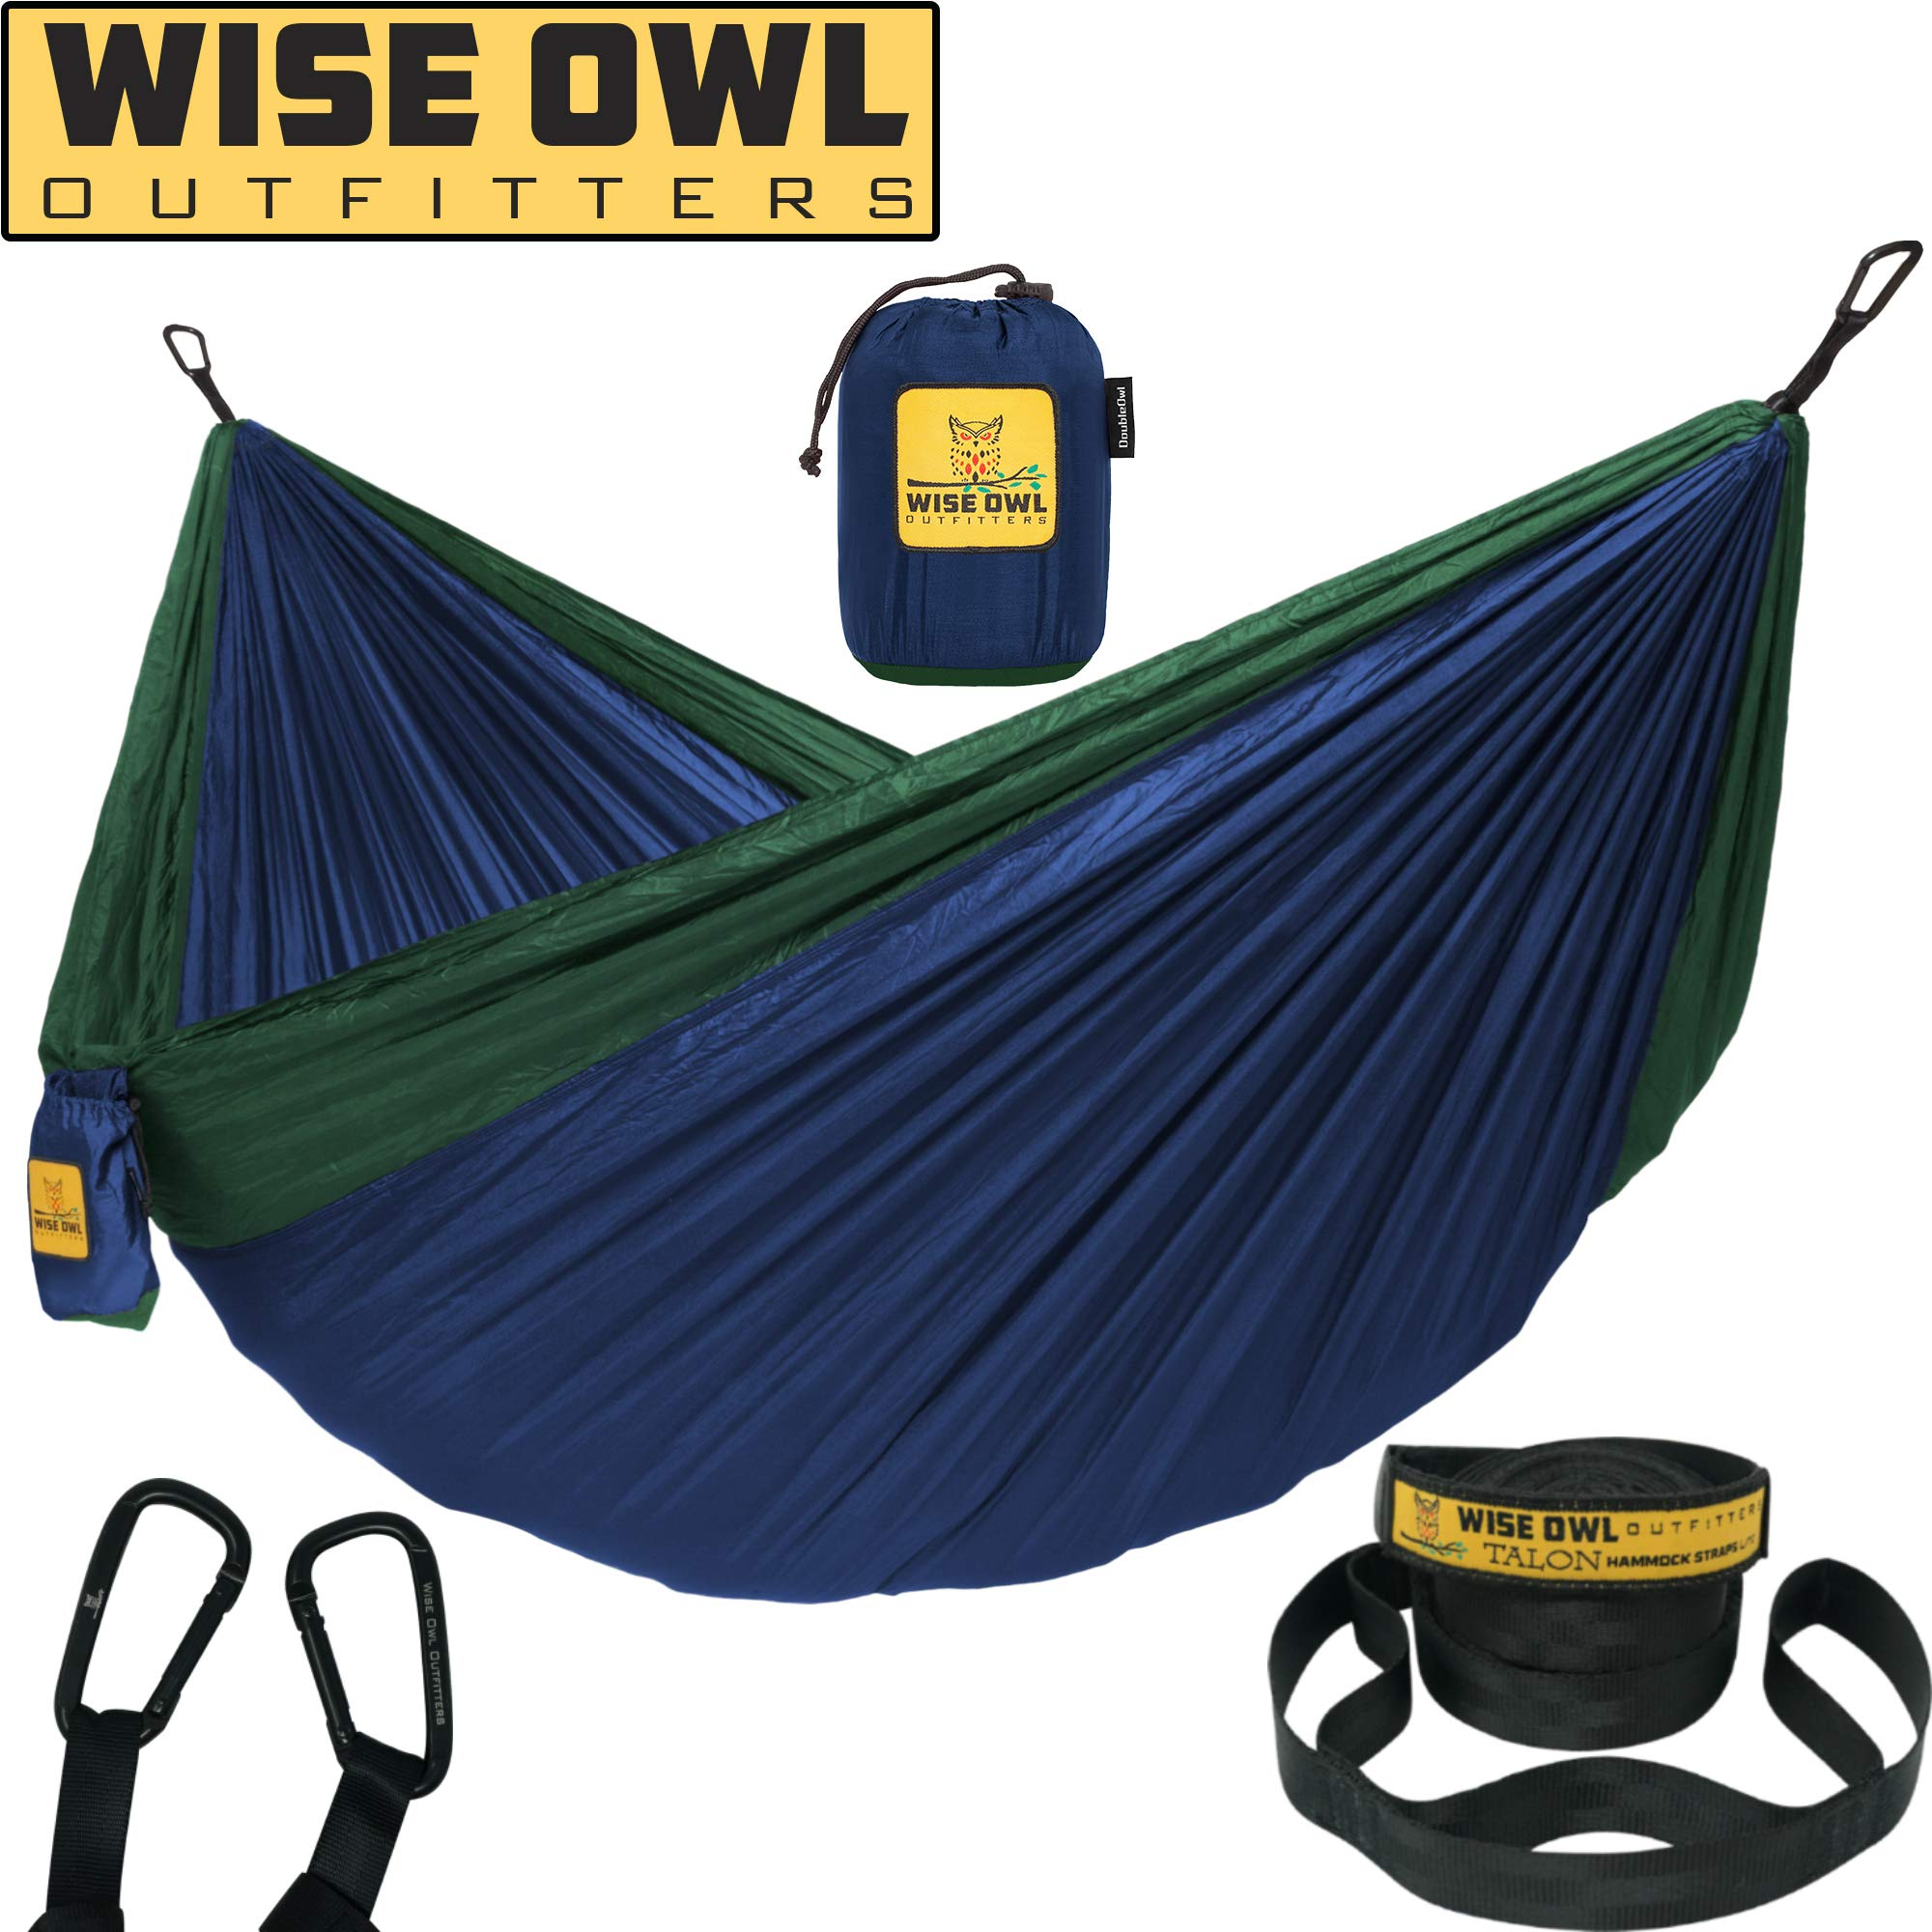 Wise Owl Outfitters Hammock Camping Double & Single Tree Hammocks - USA Based Brand - Indoor Outdoor Backpacking Survival & Travel, Portable (DO Navy Blue & Forrest Green, DoubleOwl)